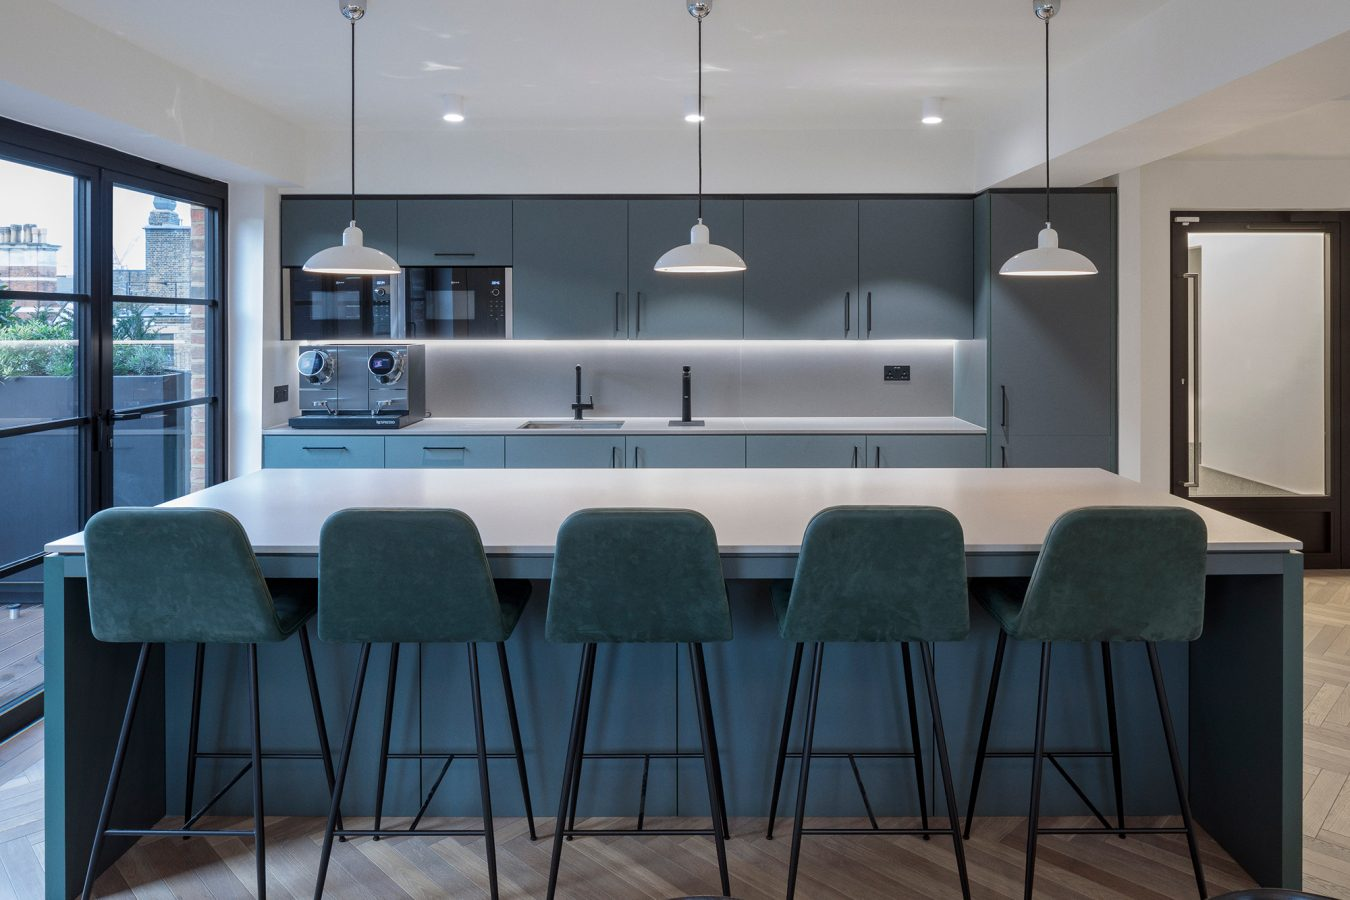 Modern kitchen and break-out area, created by Open team in Elsley House, Fitzrovia.